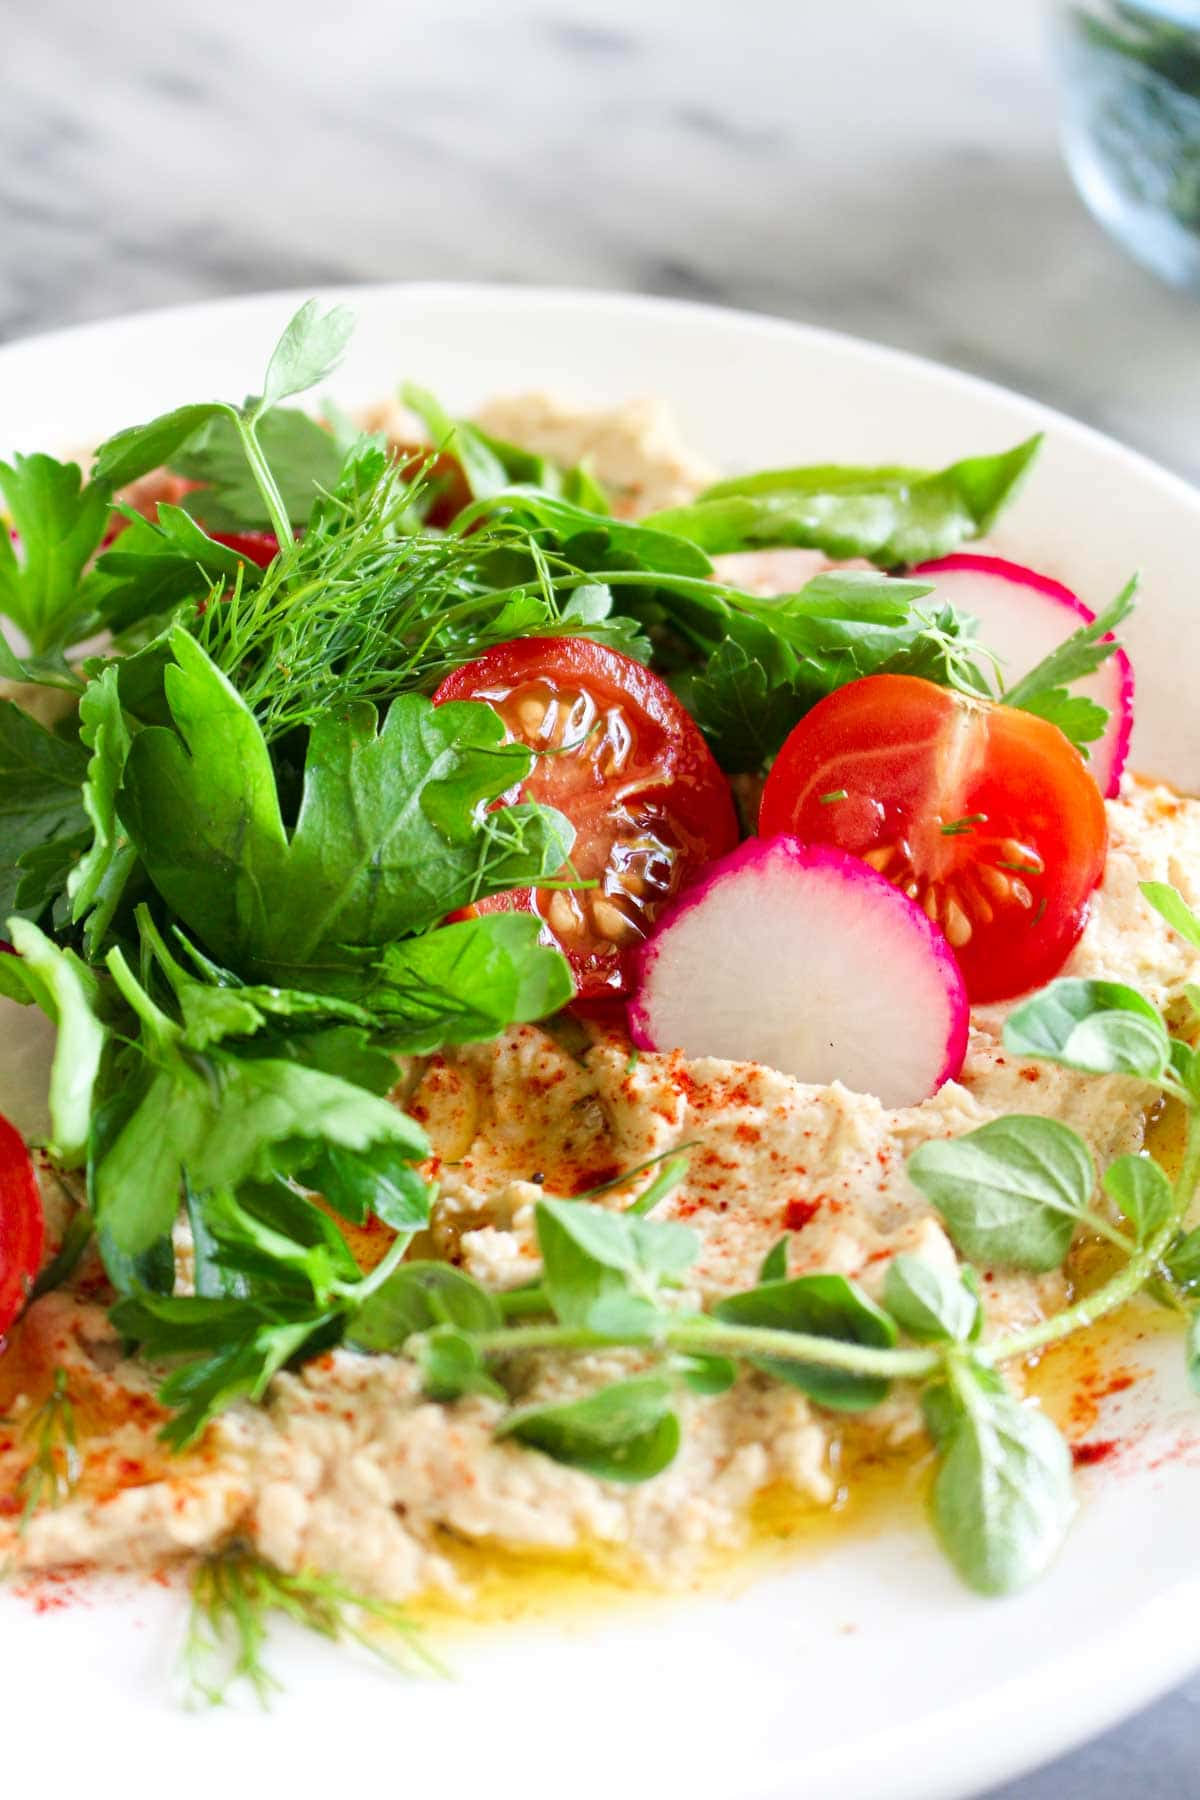 This easy Hummus Salad Recipe ensures you get a bit of creamy hummus in each bite! This healthy side can be made in less than 30 minutes.| CatchingSeeds.com